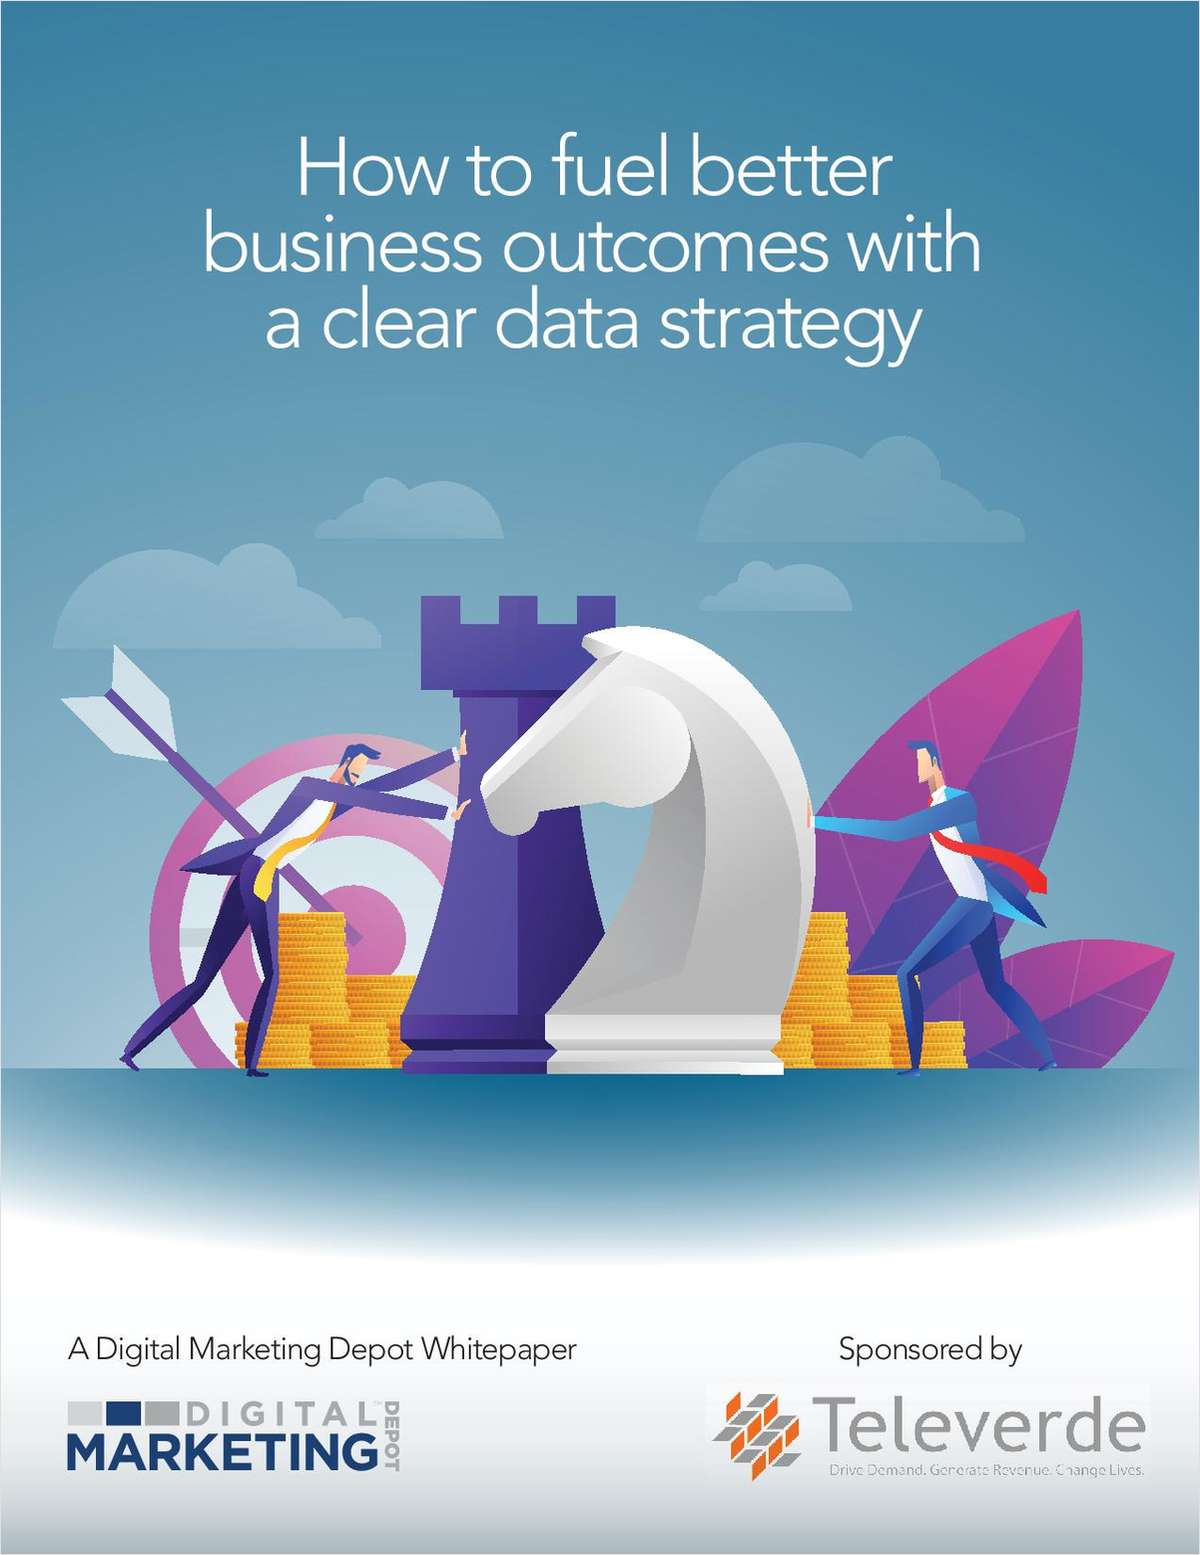 How to Fuel Better Business Outcomes With a Clear Data Strategy